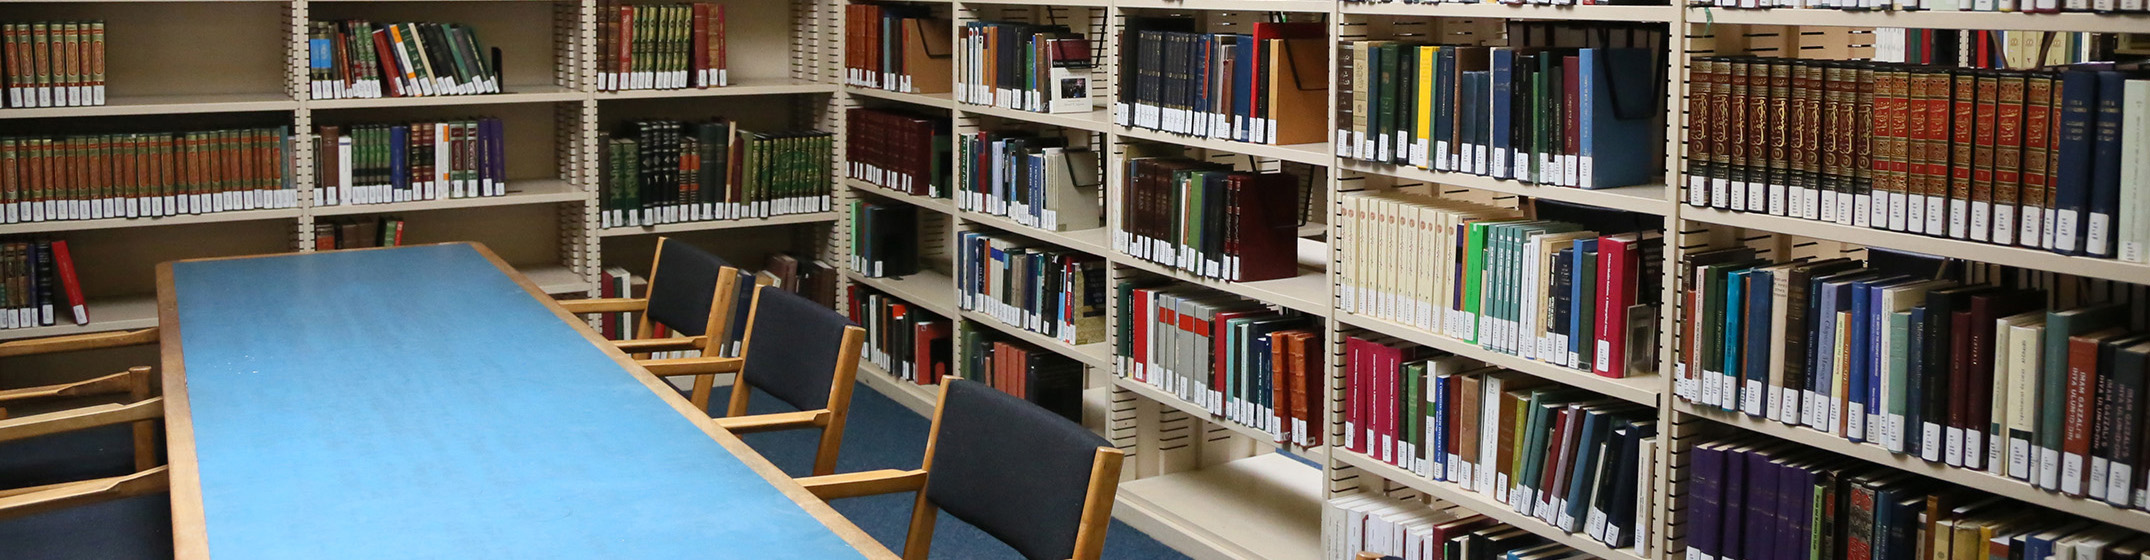 A long blue table surrounded by bookshelves